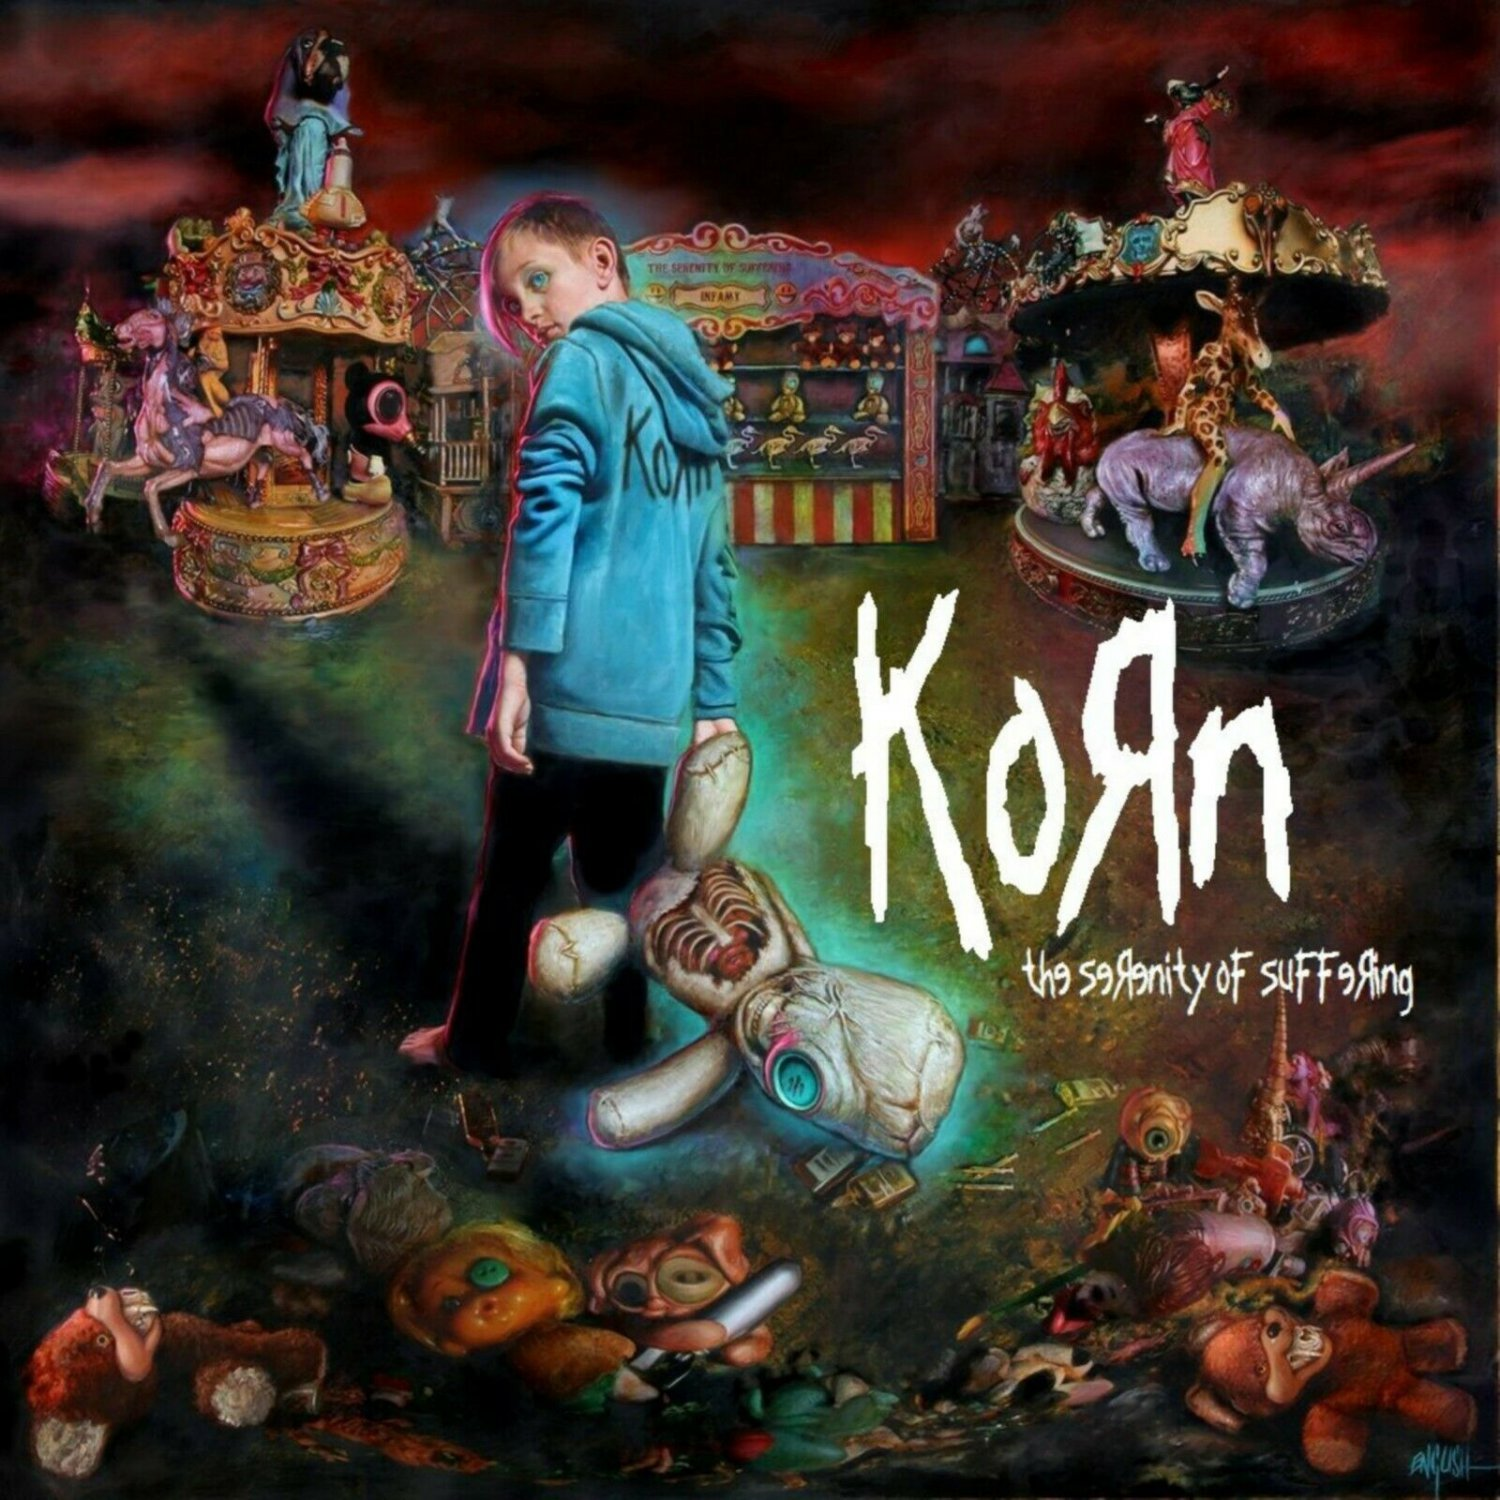 KORN The Serenity of Suffering BANNER Huge 4X4 Ft Fabric Poster Tapestry Flag Print album cover art